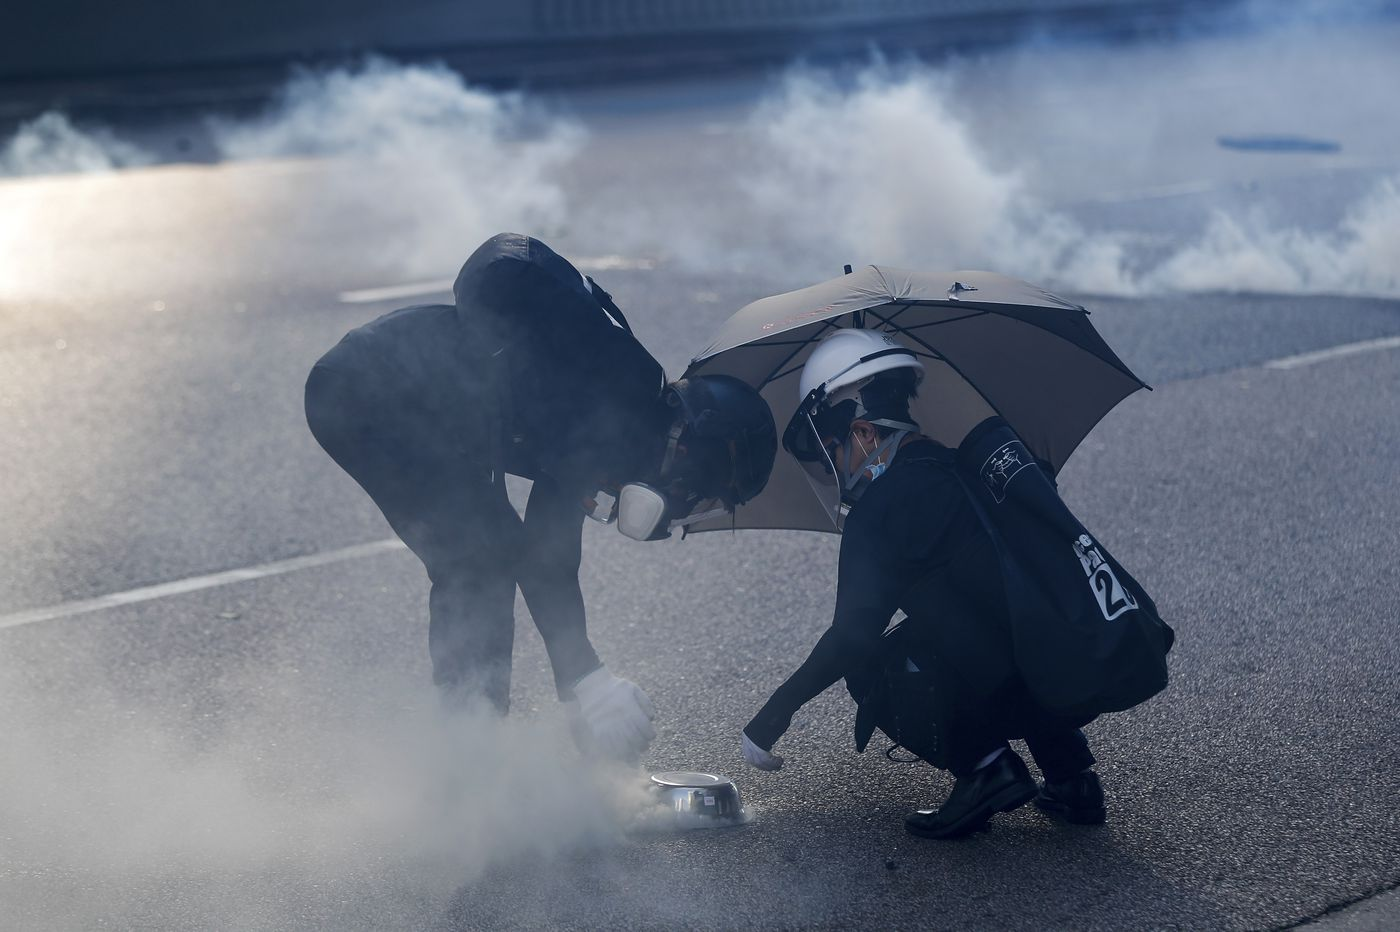 Police in Hong Kong are launching tear gas canisters made in Pennsylvania